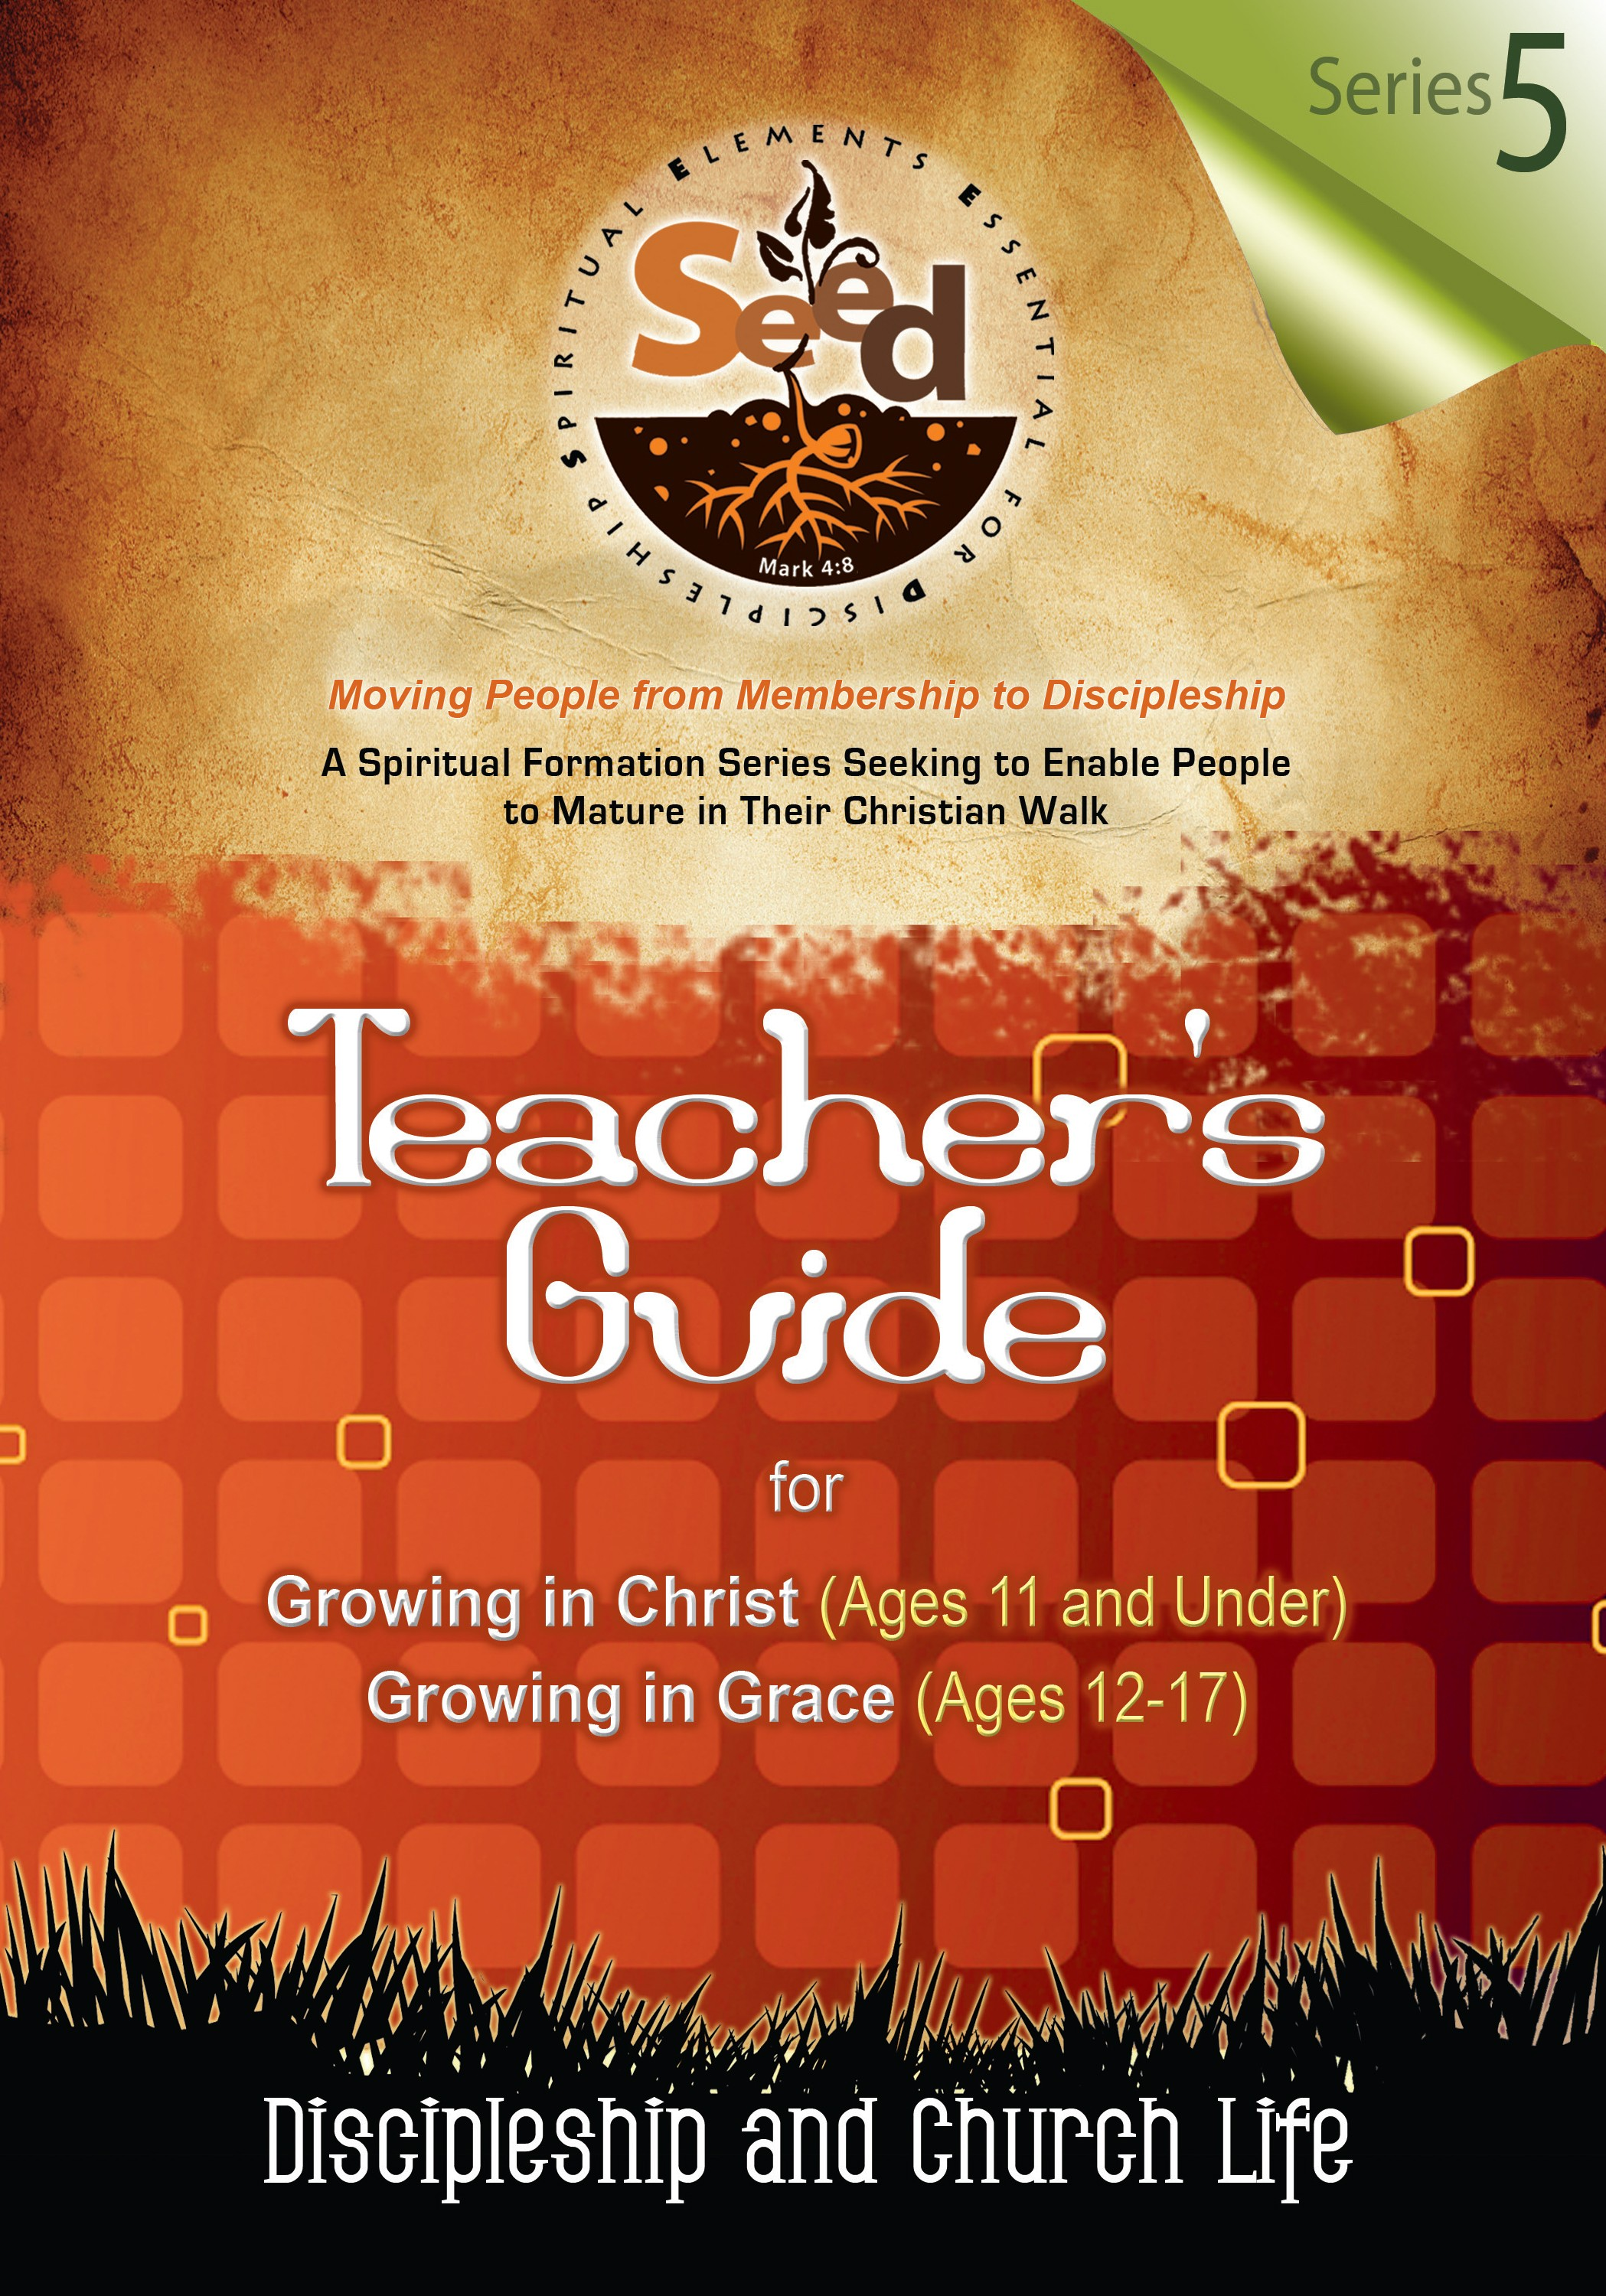 SEED Children/Youth Teacher's Guide: Series 5: Discipleship and Church Life